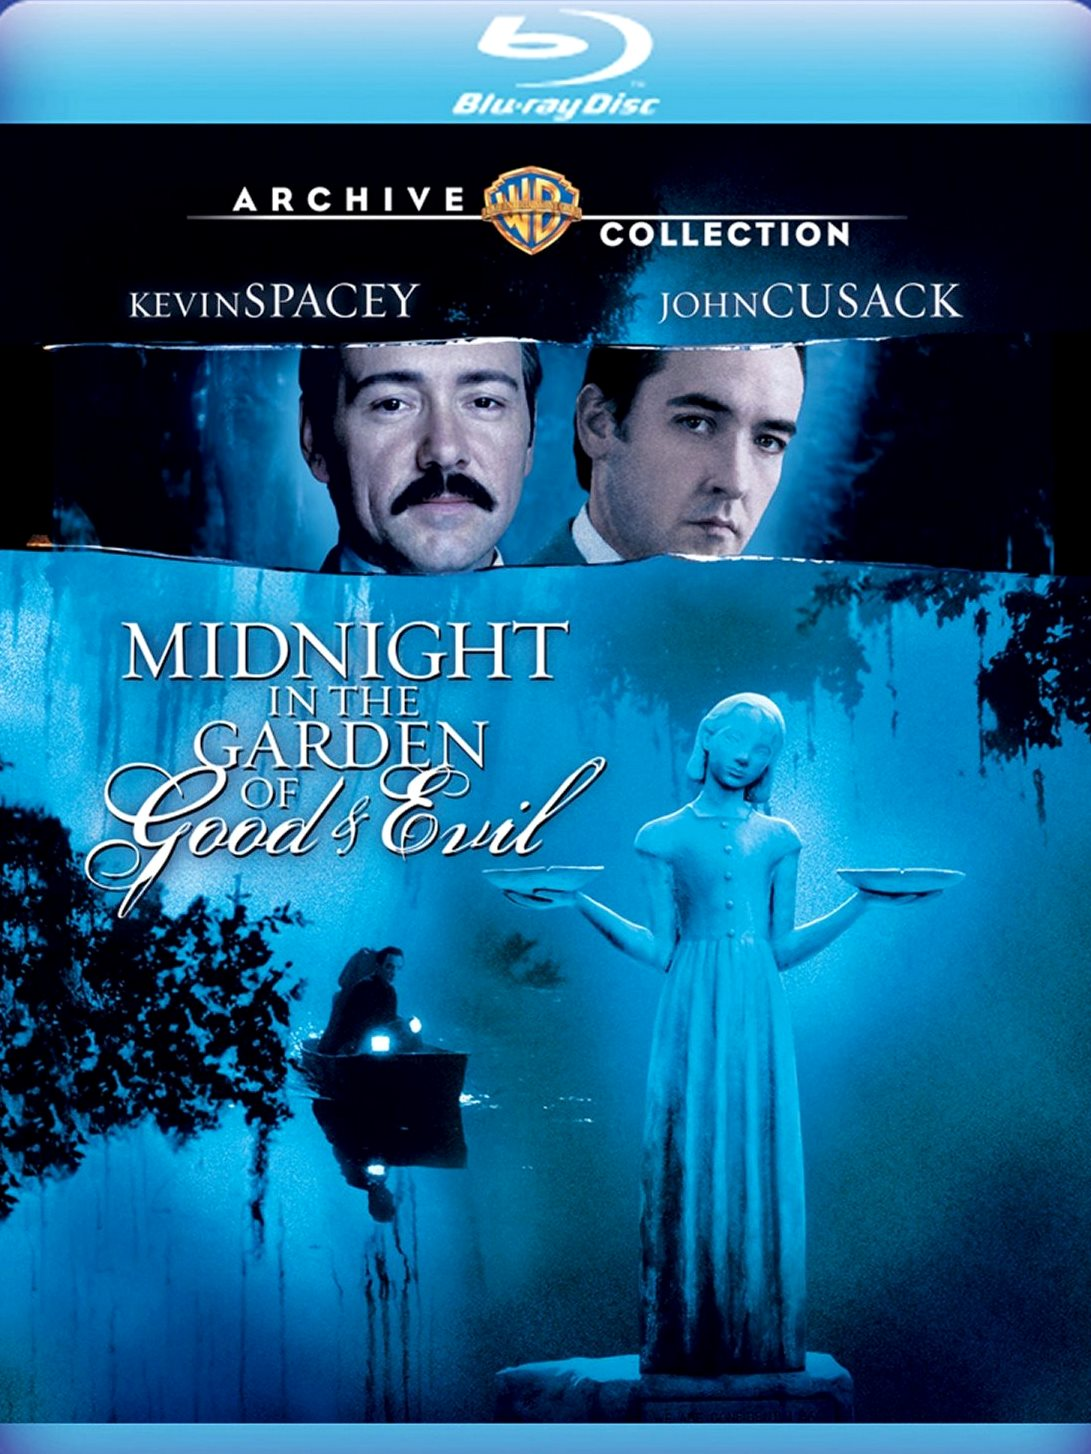 Nixpix Dvd Blu Ray Reviews Midnight In The Garden Of Good And Evil Blu Ray Wb 1997